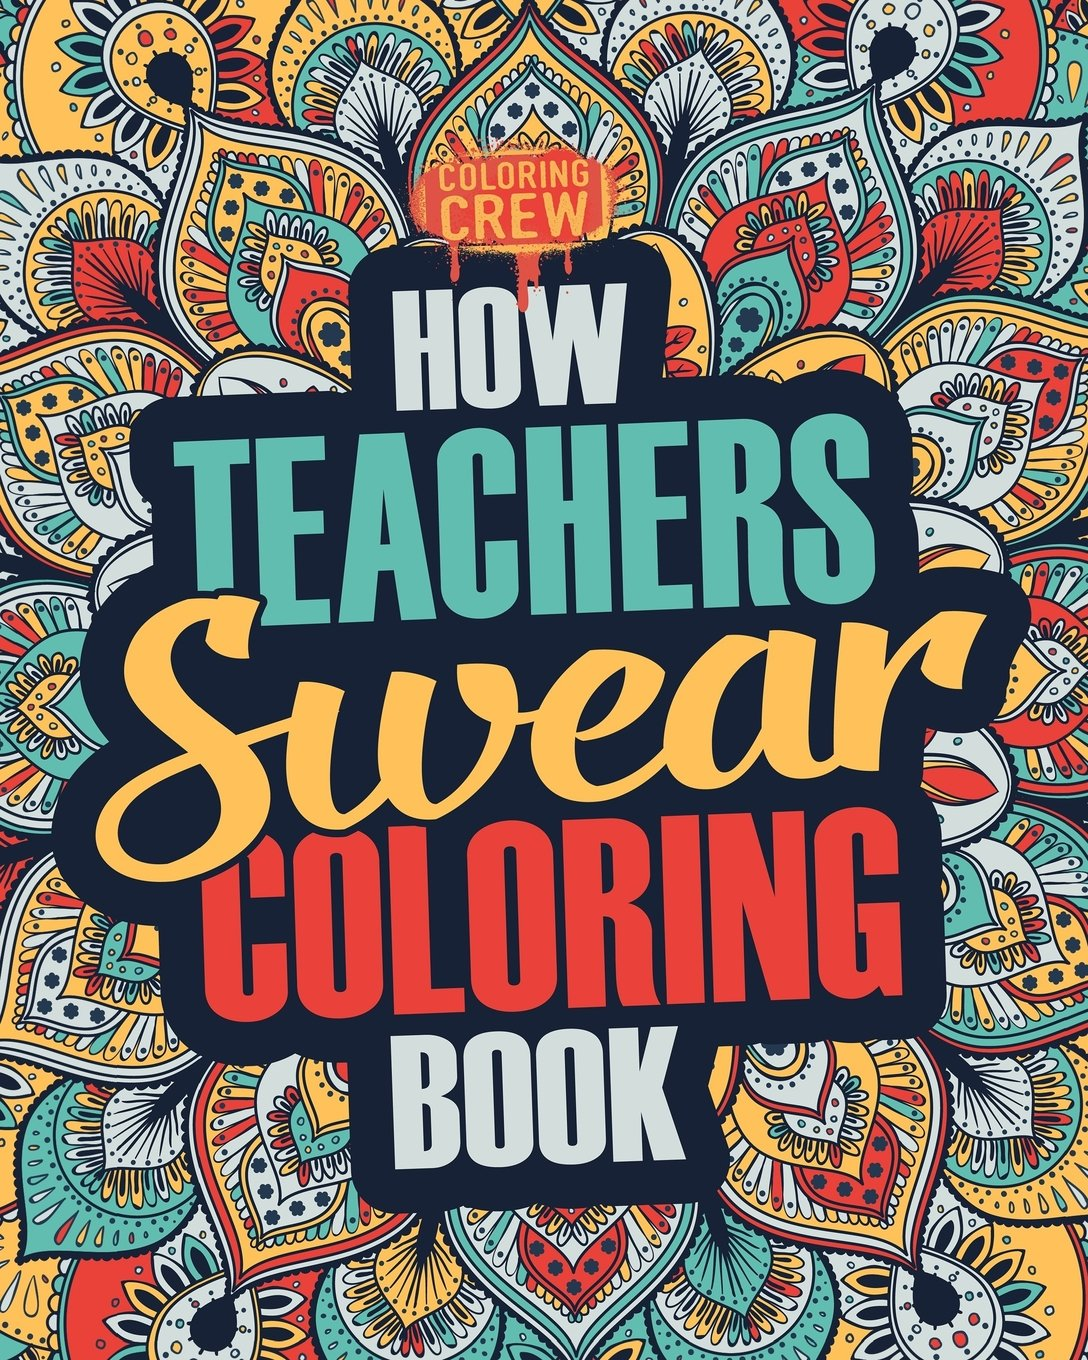 Amazon.com: How Teachers Swear Coloring Book: A Funny, Irreverent